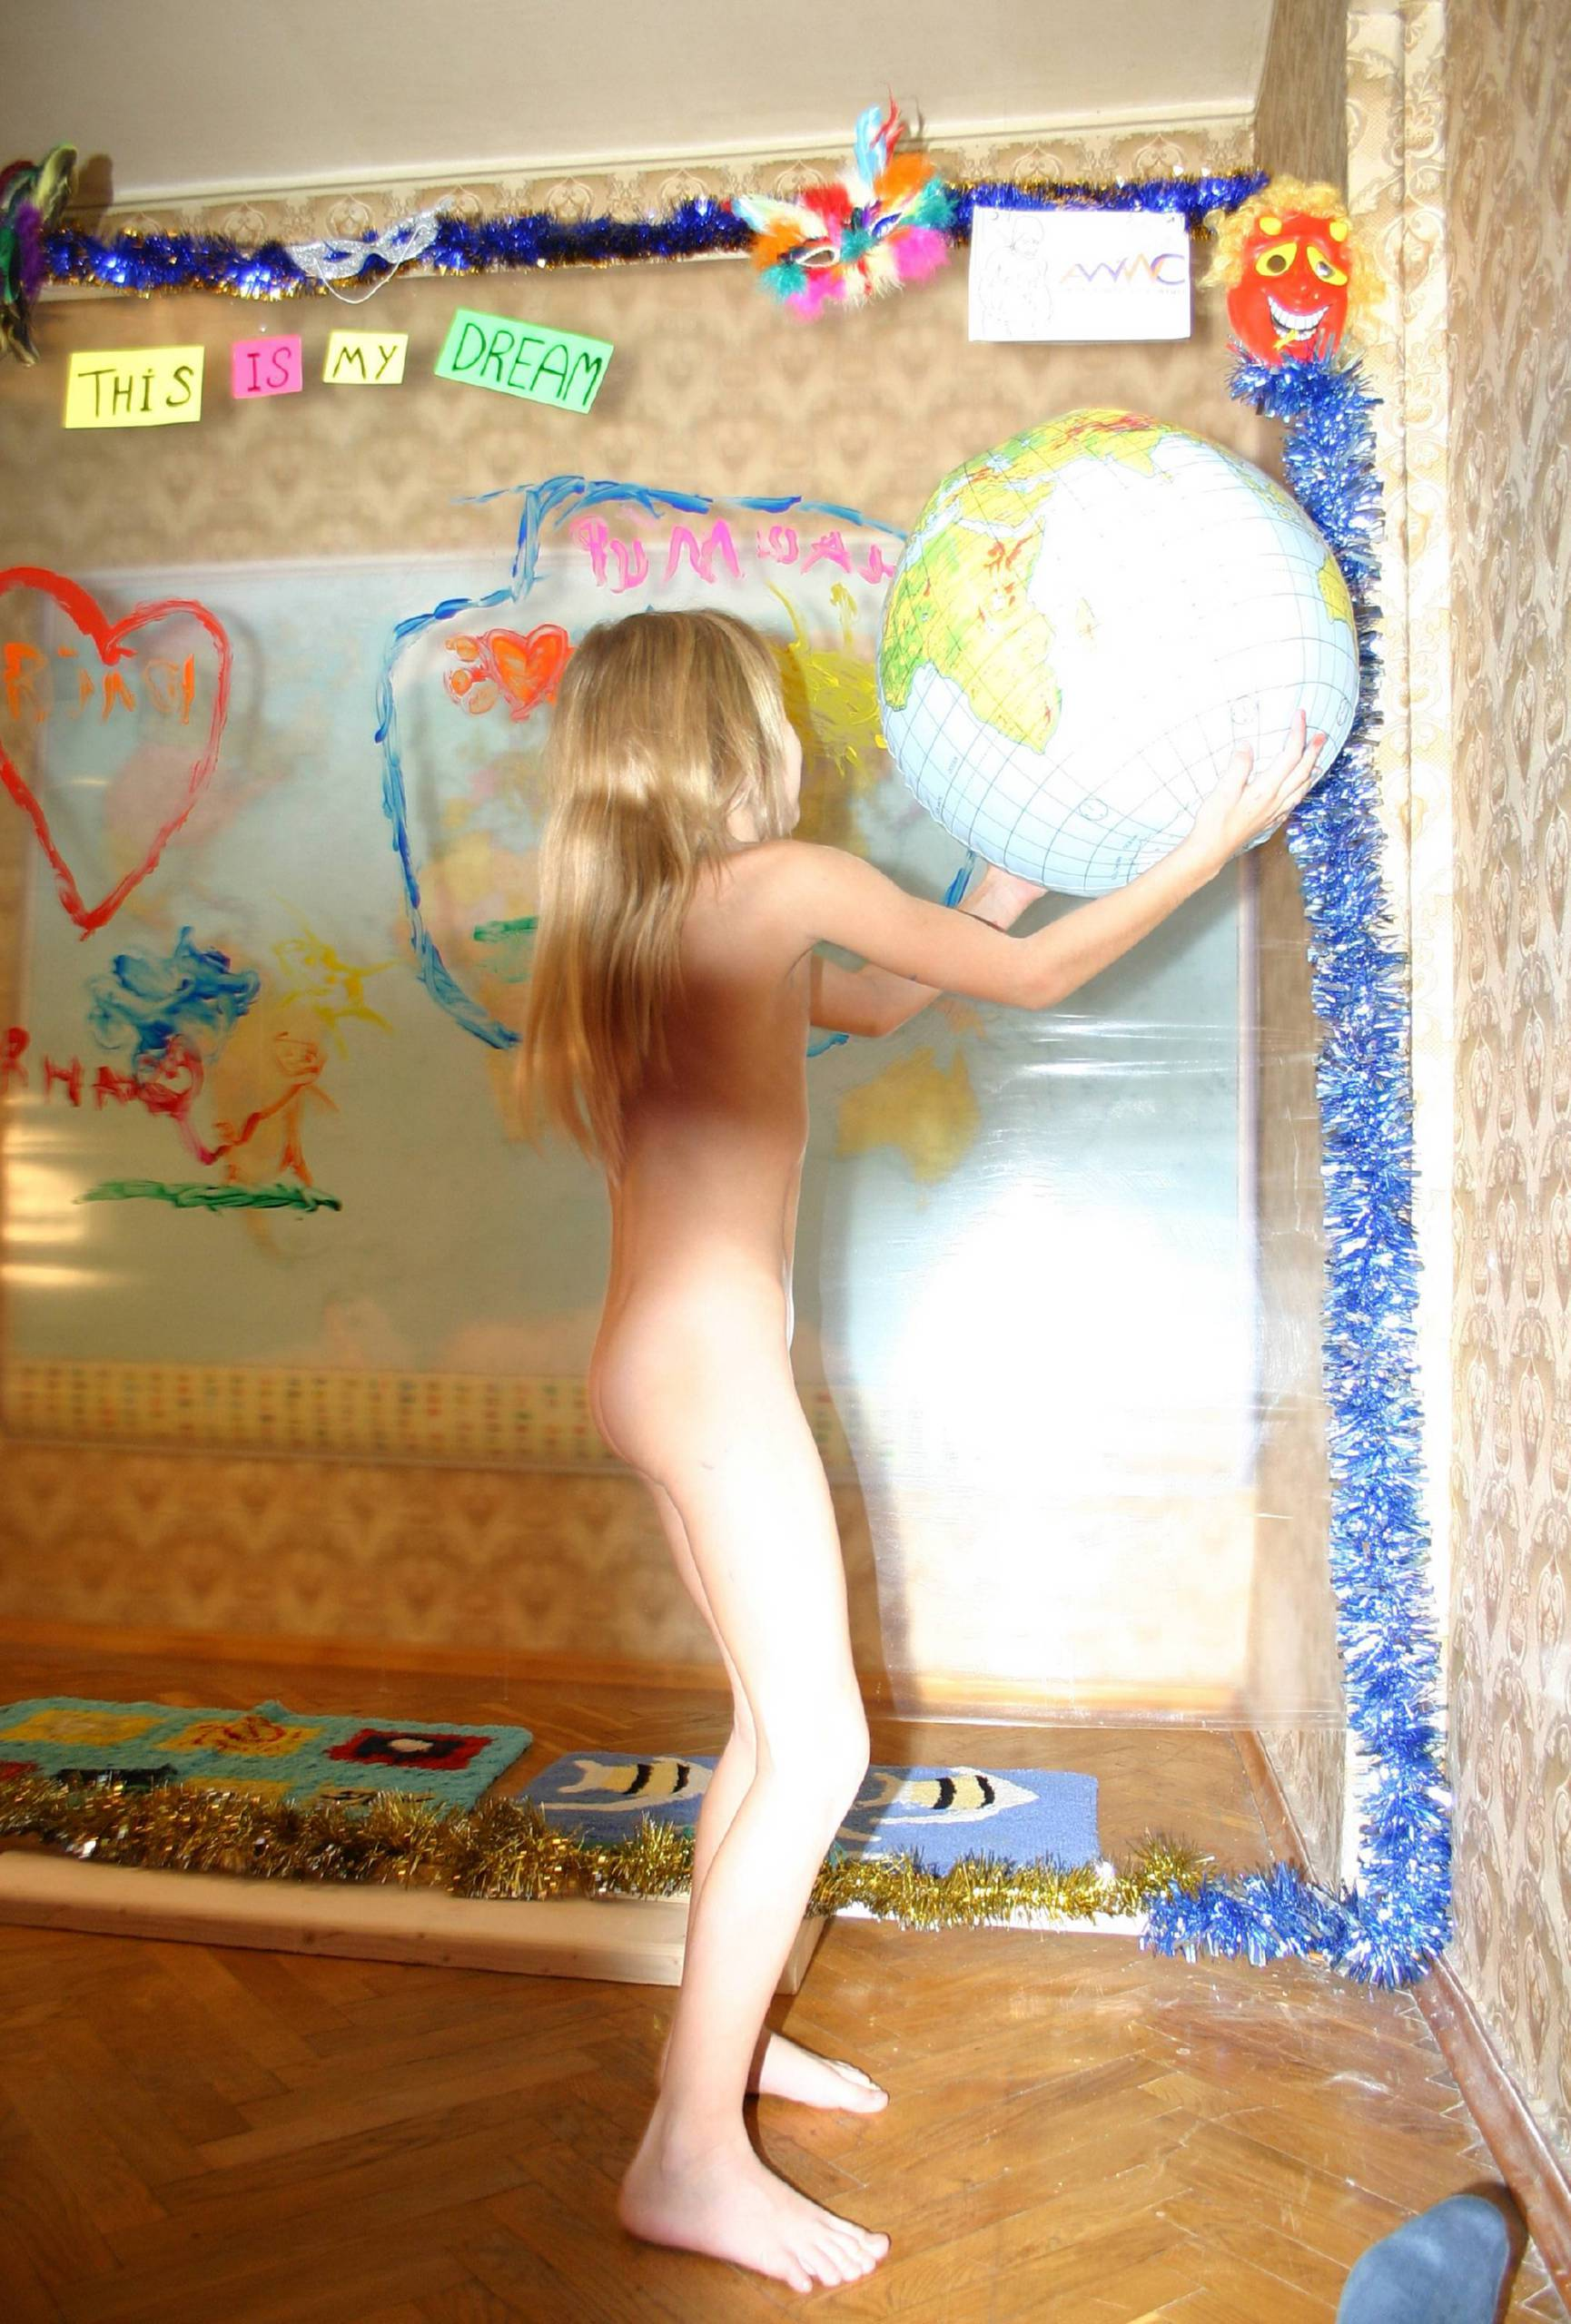 Nudist World Play Posing - 1